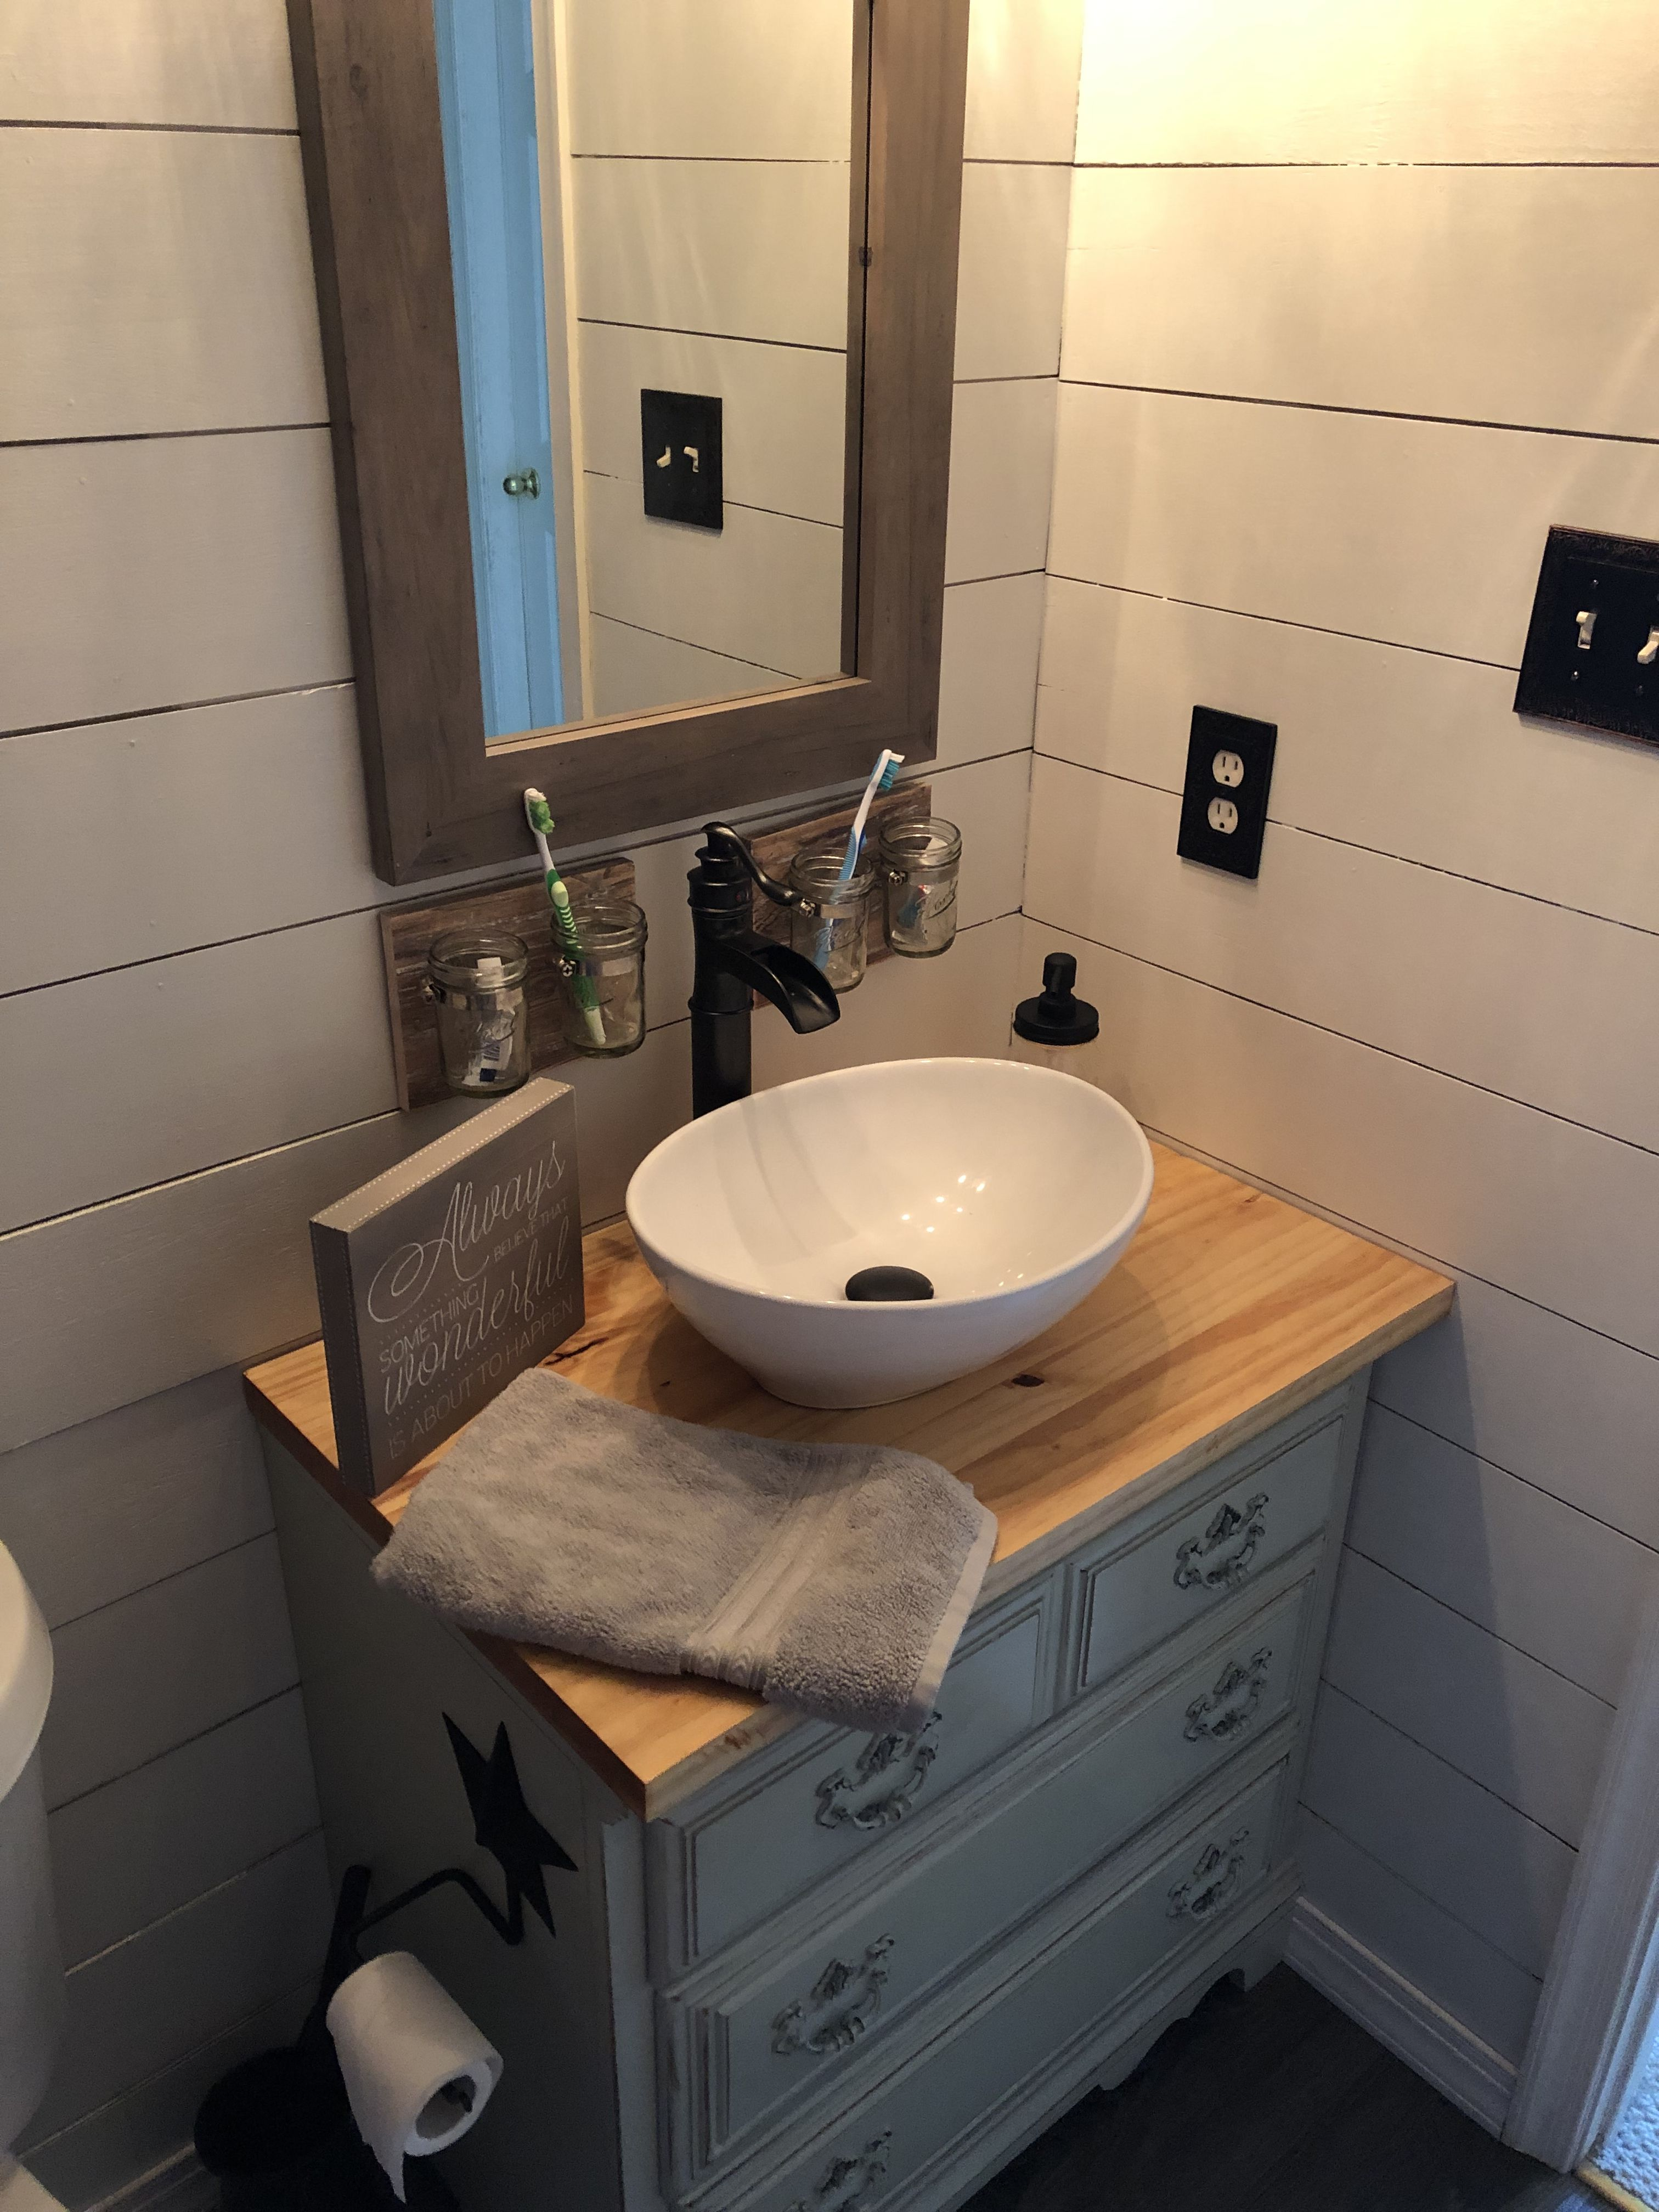 Diy Vanity With Vessel Sink Using Small Chest Of Drawers Vessel Sink Vanity Small Bathroom Vanities Small Vessel Sinks